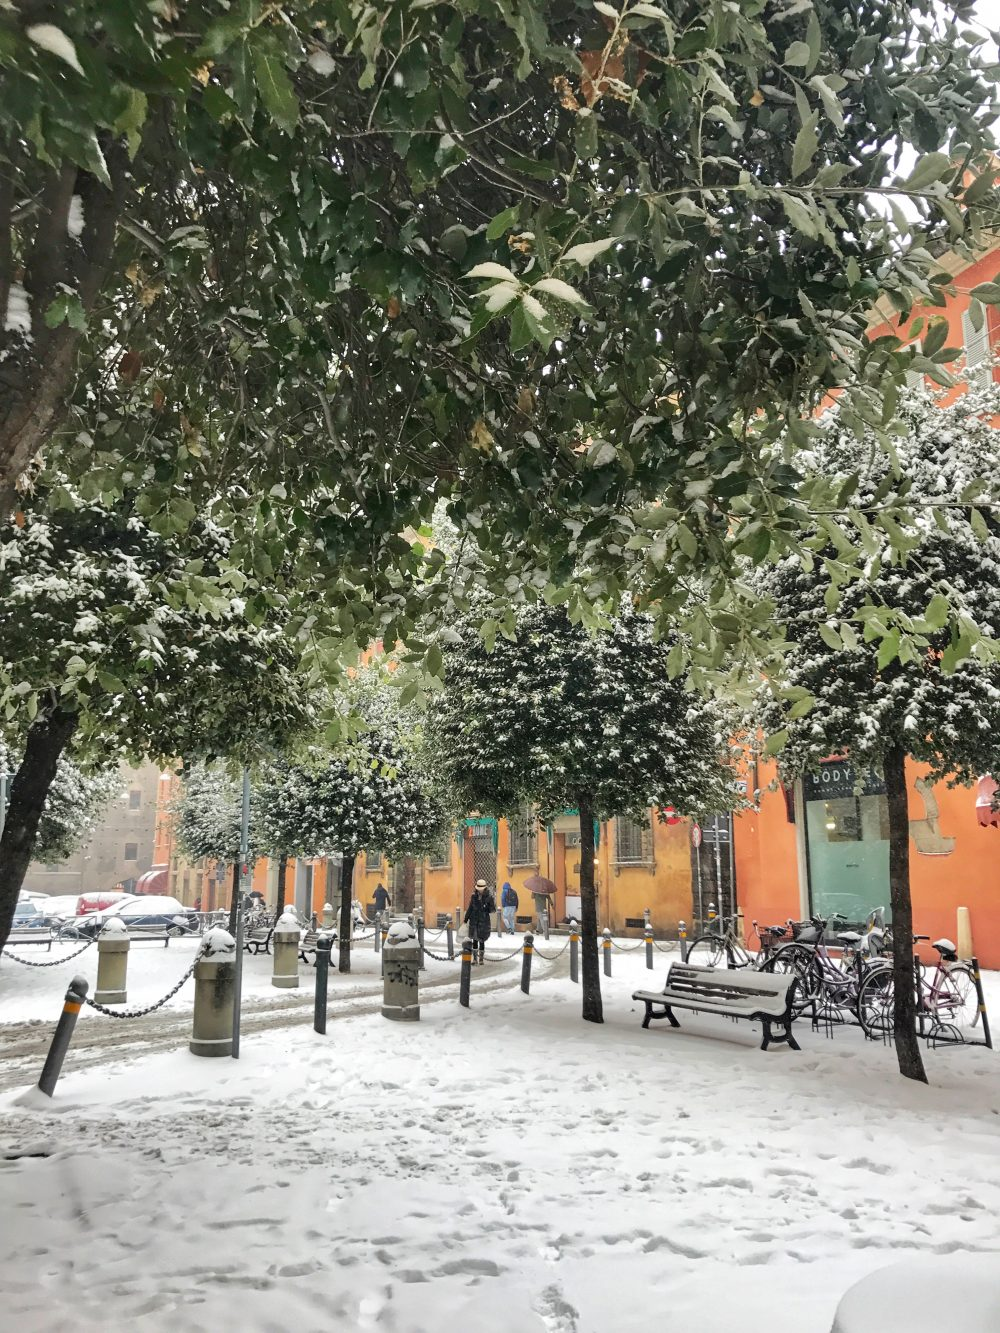 Bologna under the snow